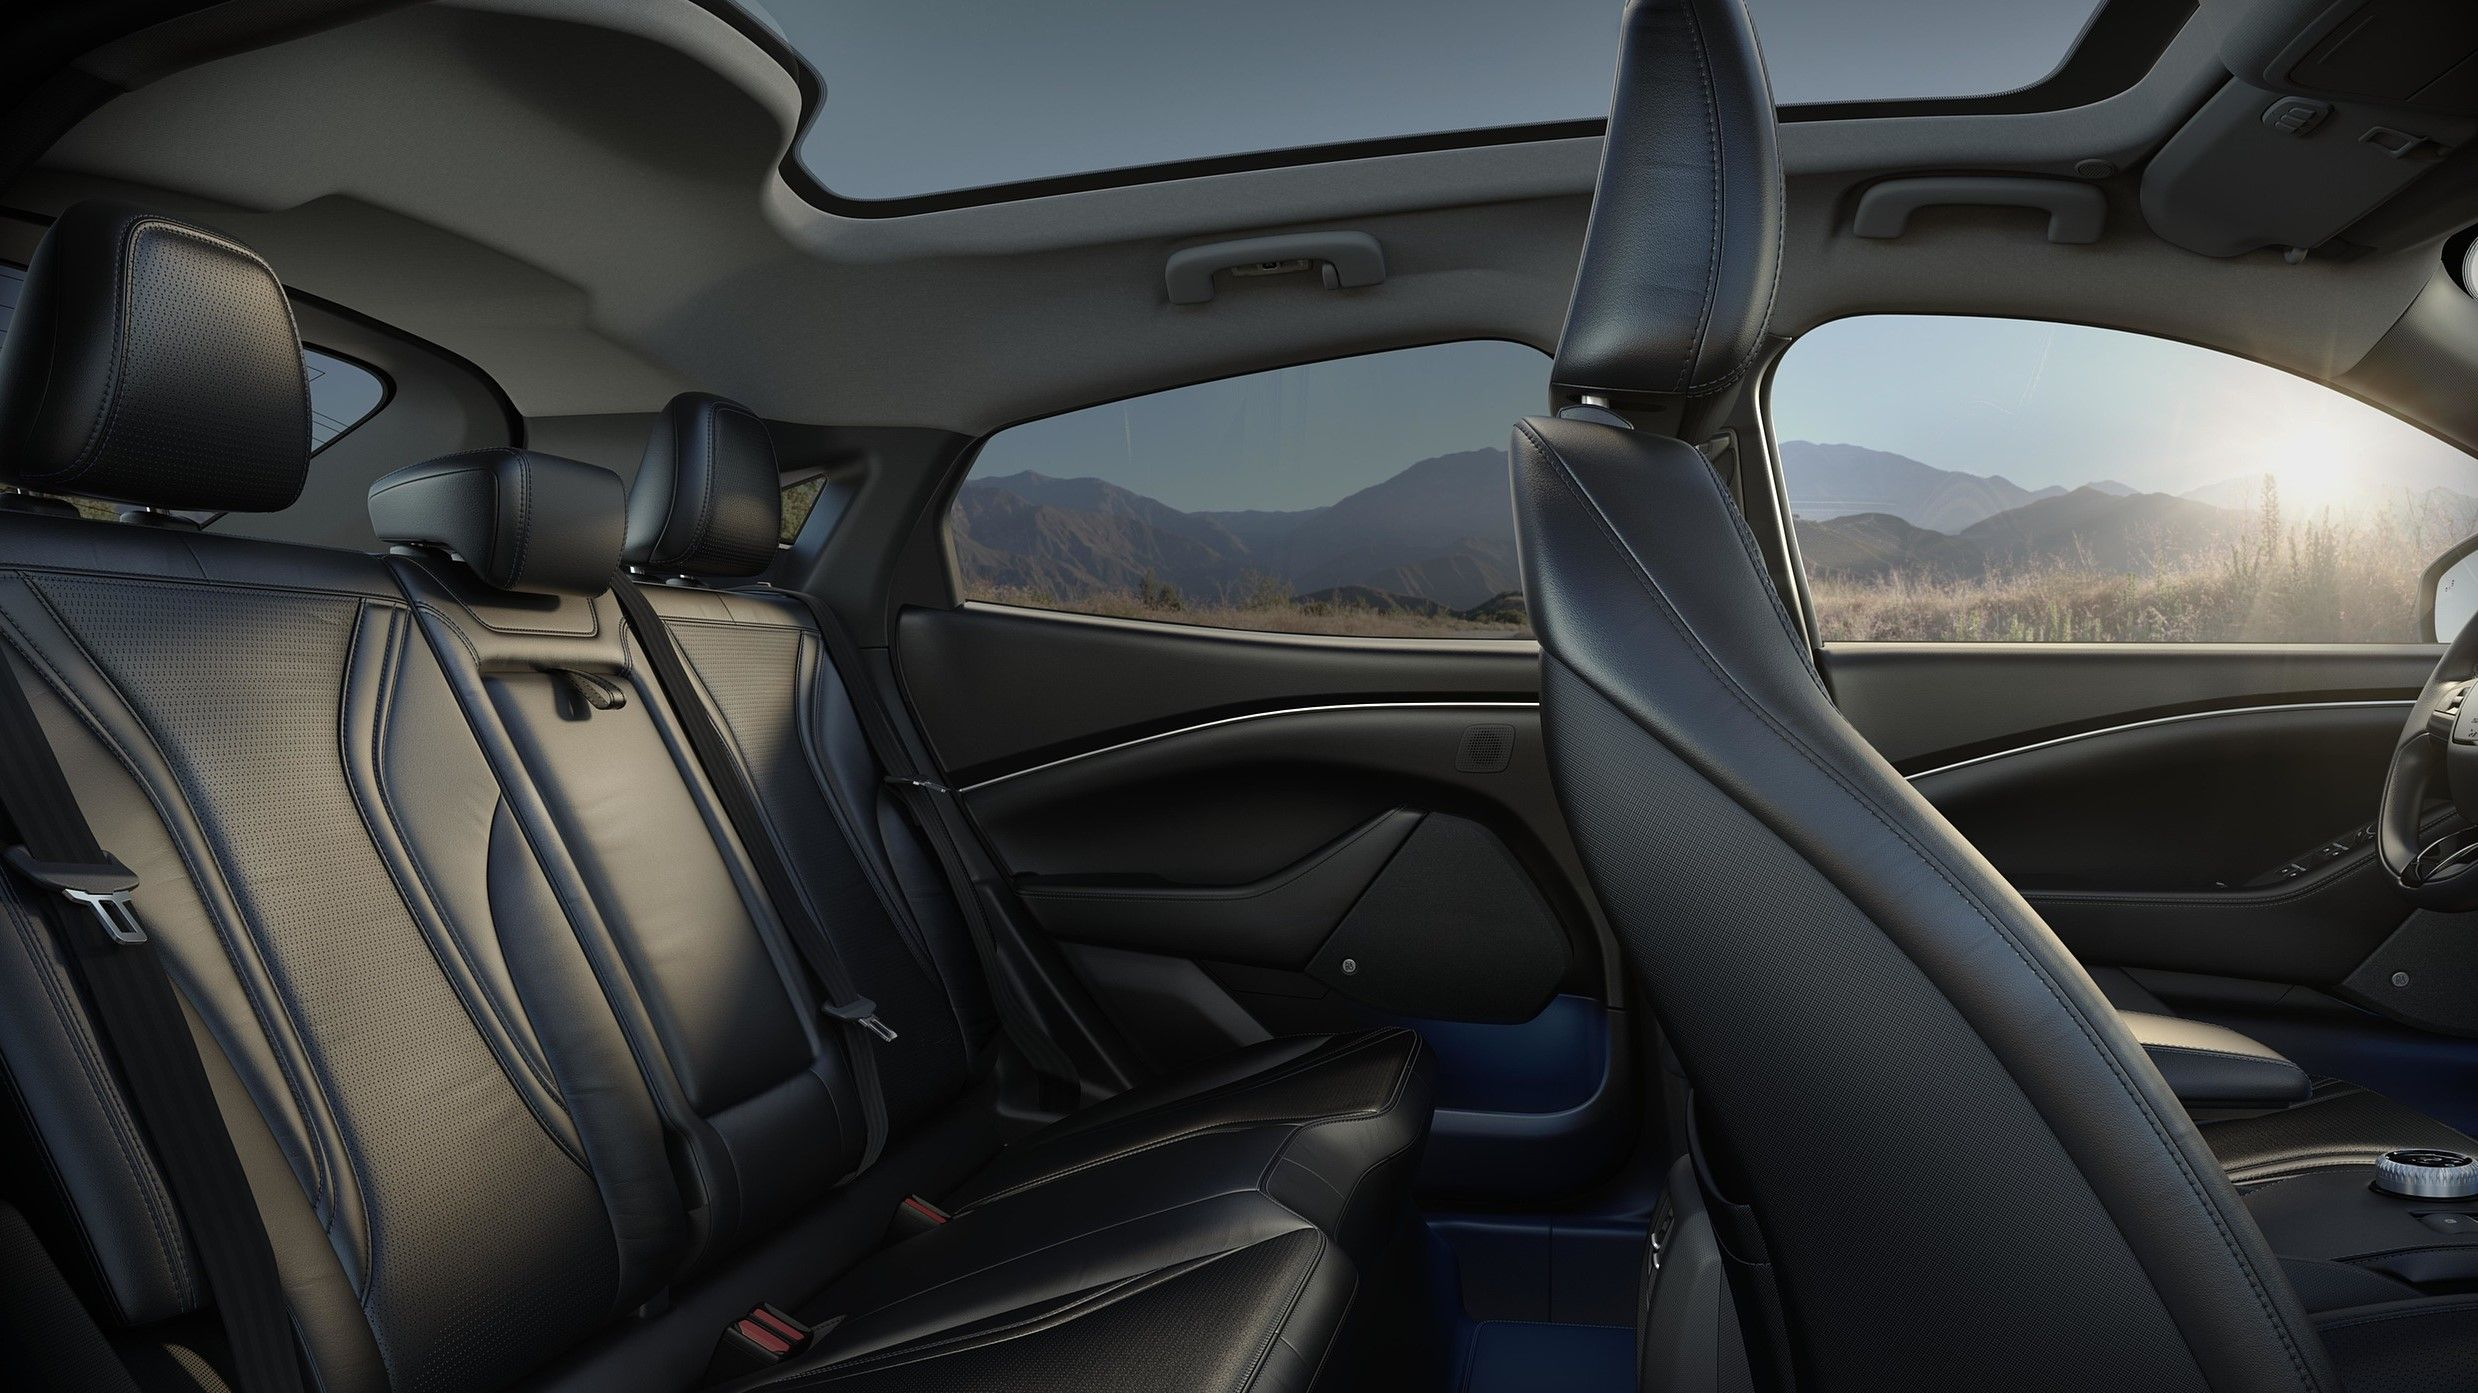 2021 ford mustang mach e interior seating 2